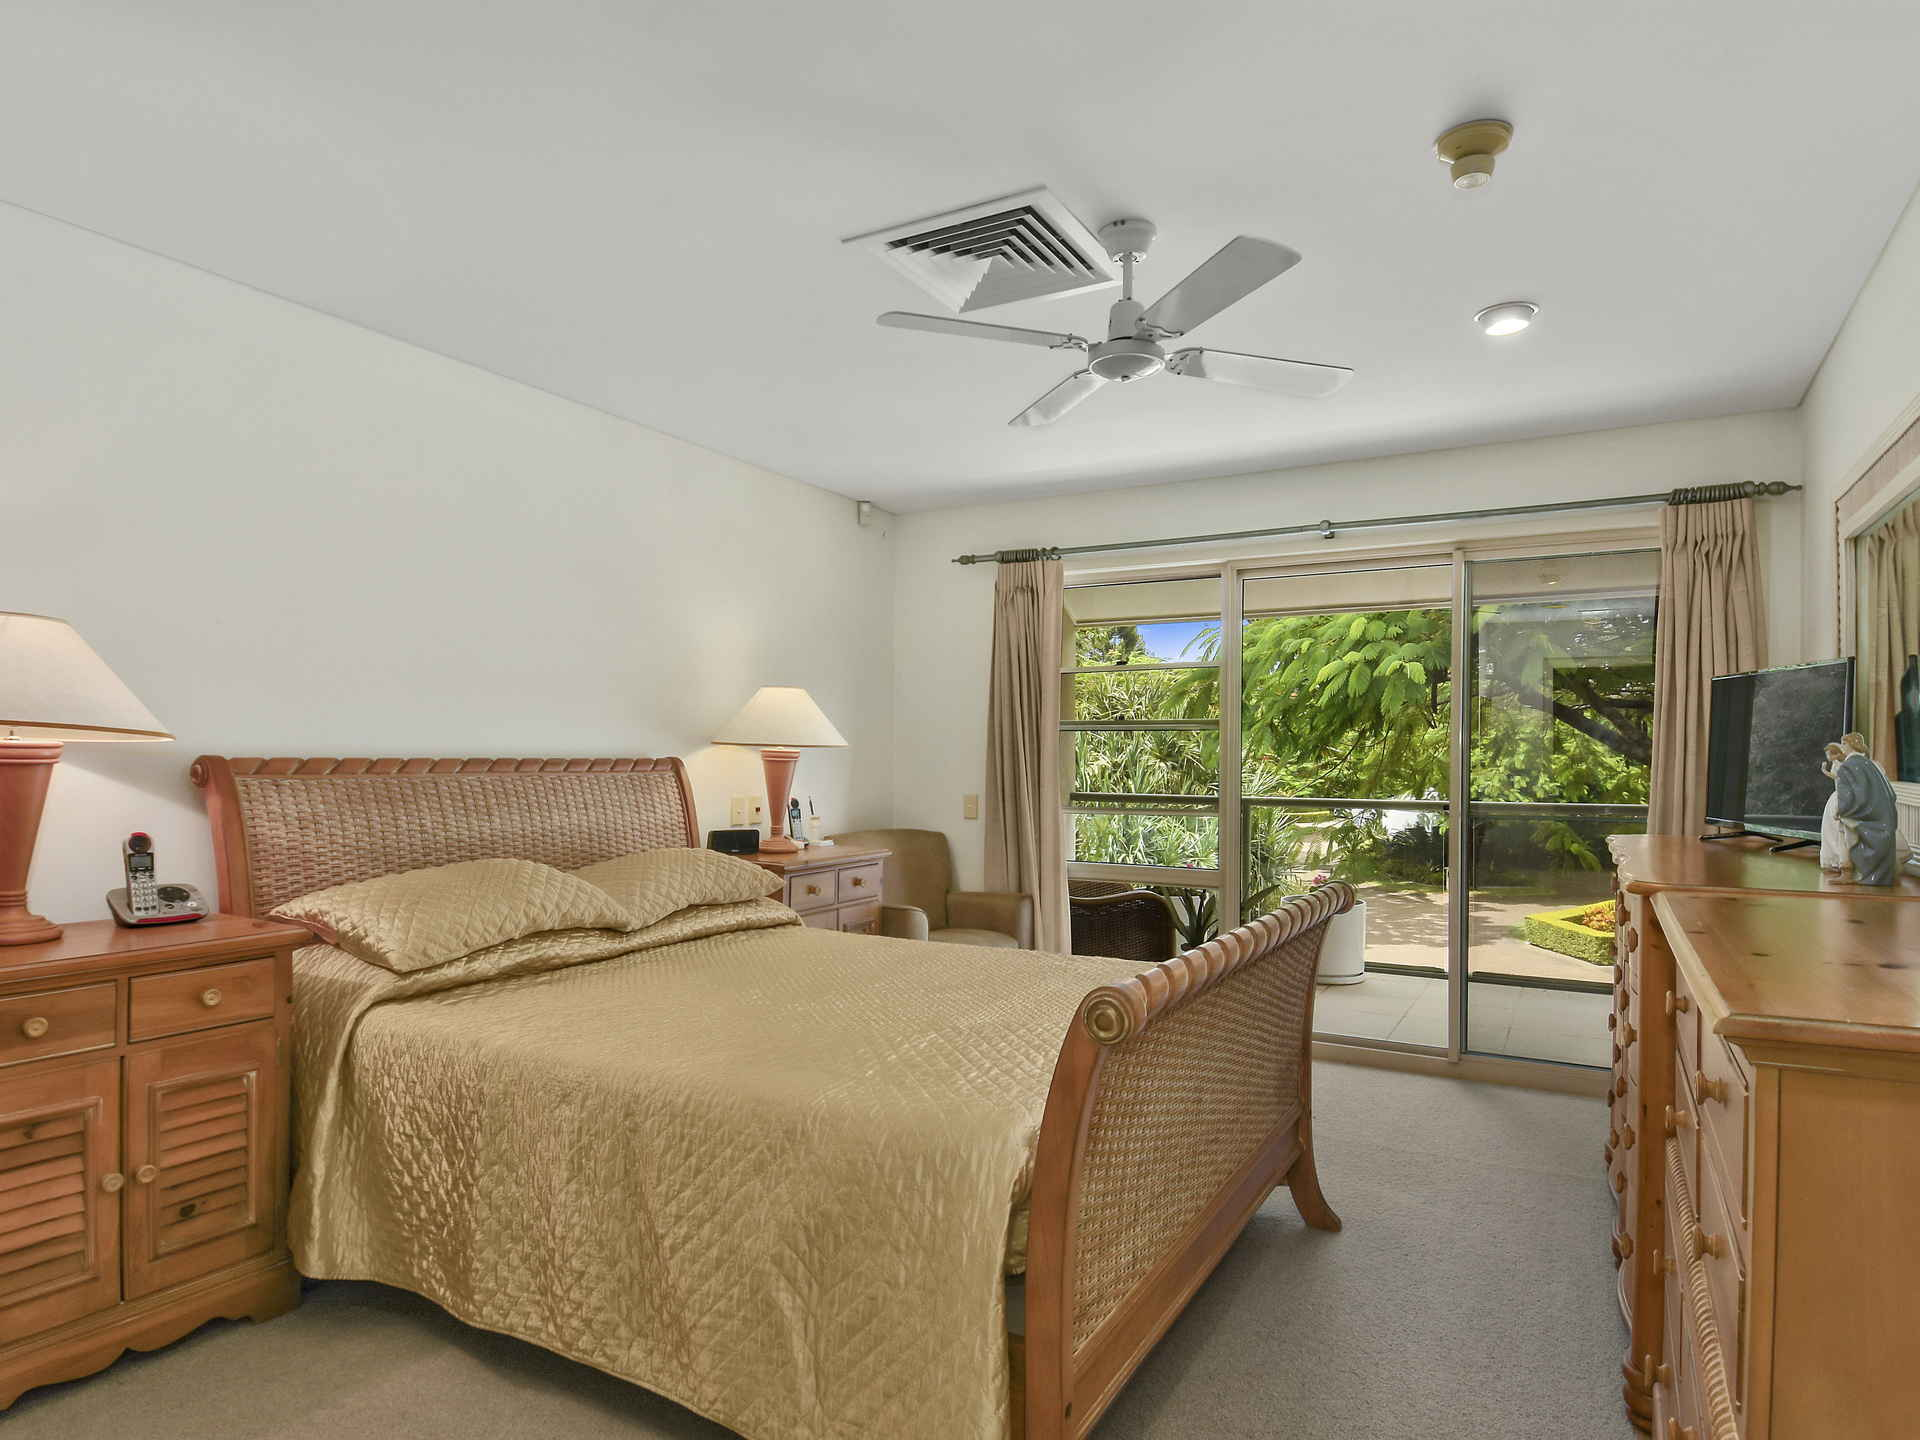 Real Estate   Gold Coast   Chevron Realty   007 Open2view Id494894 2120 Ross Street Royal Pines Benowa